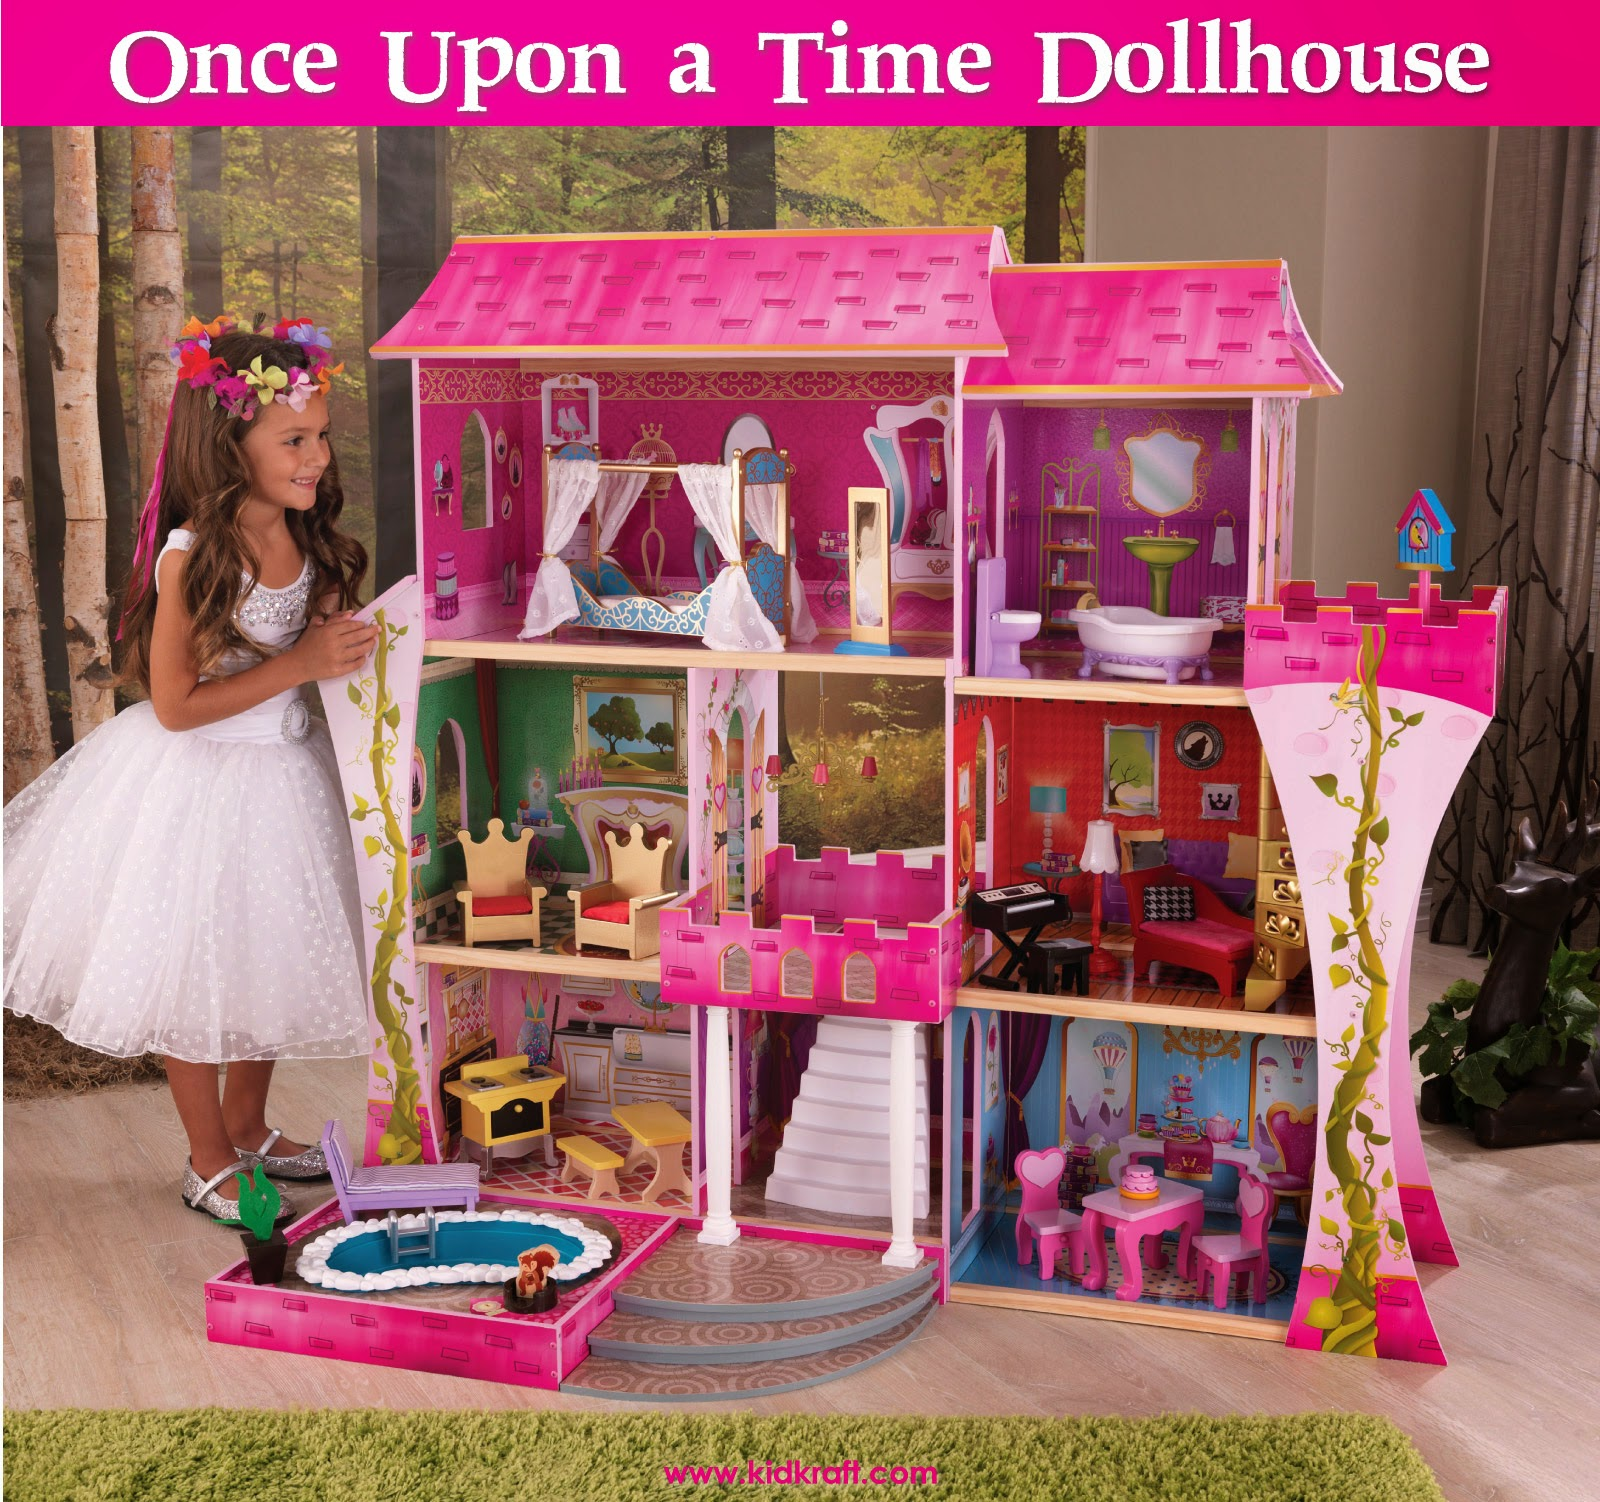 Kidkraft toys furniture new once upon a time dollhouse for Playmobil basteln